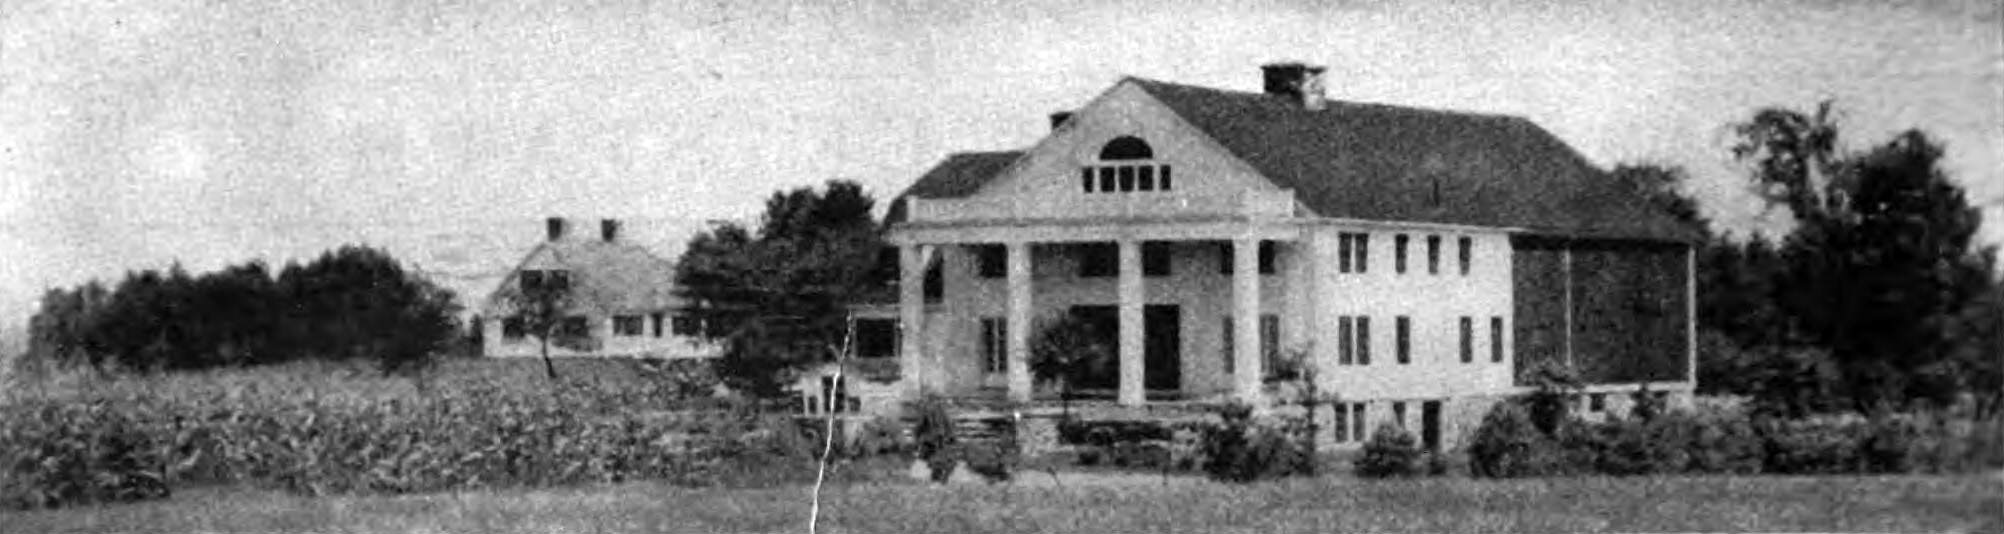 MacDowell_Colony